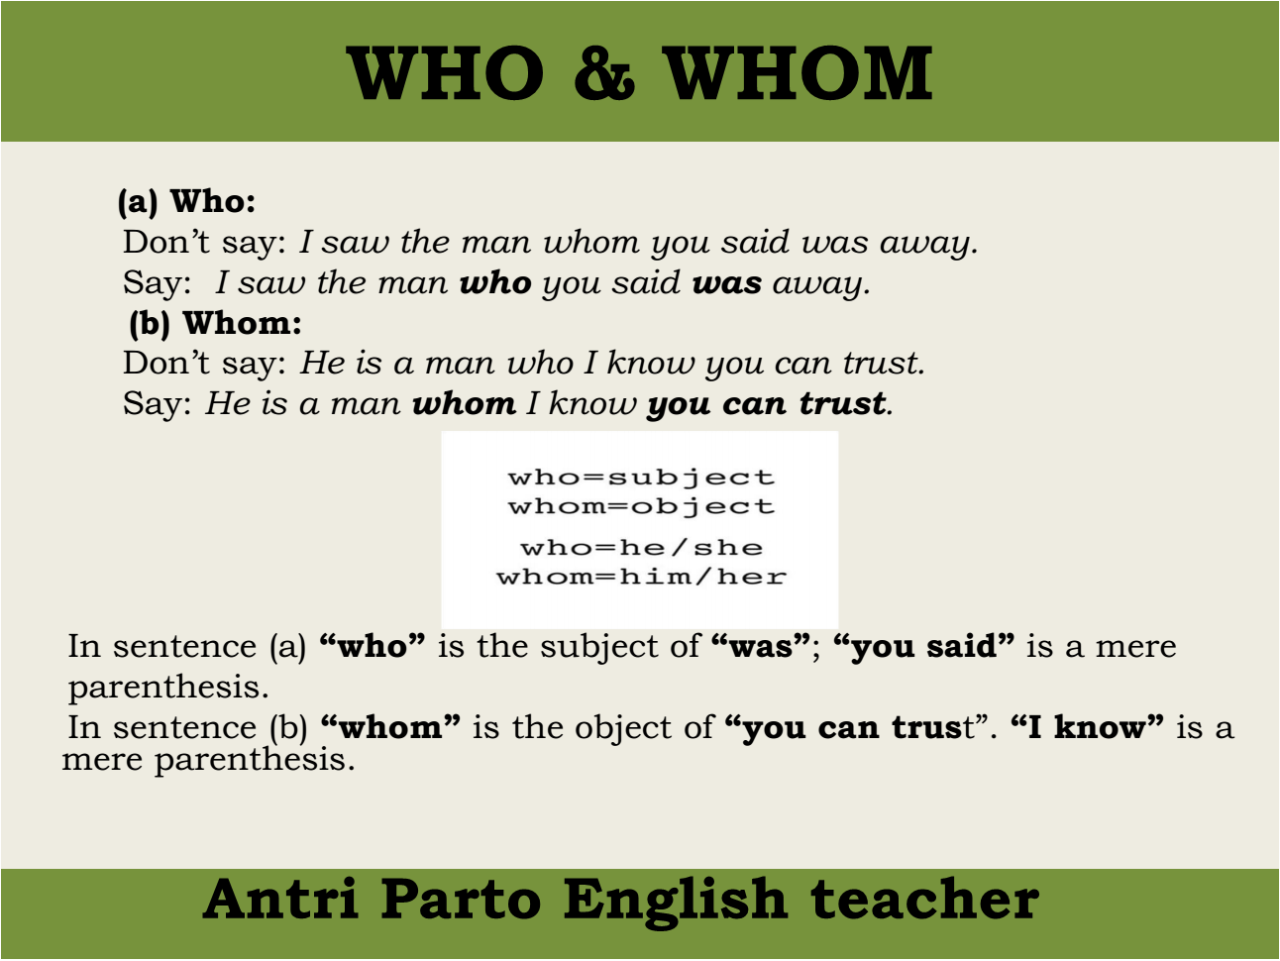 """hellolearnenglishwithantriparto: """" WHO & WHOM in English """" 